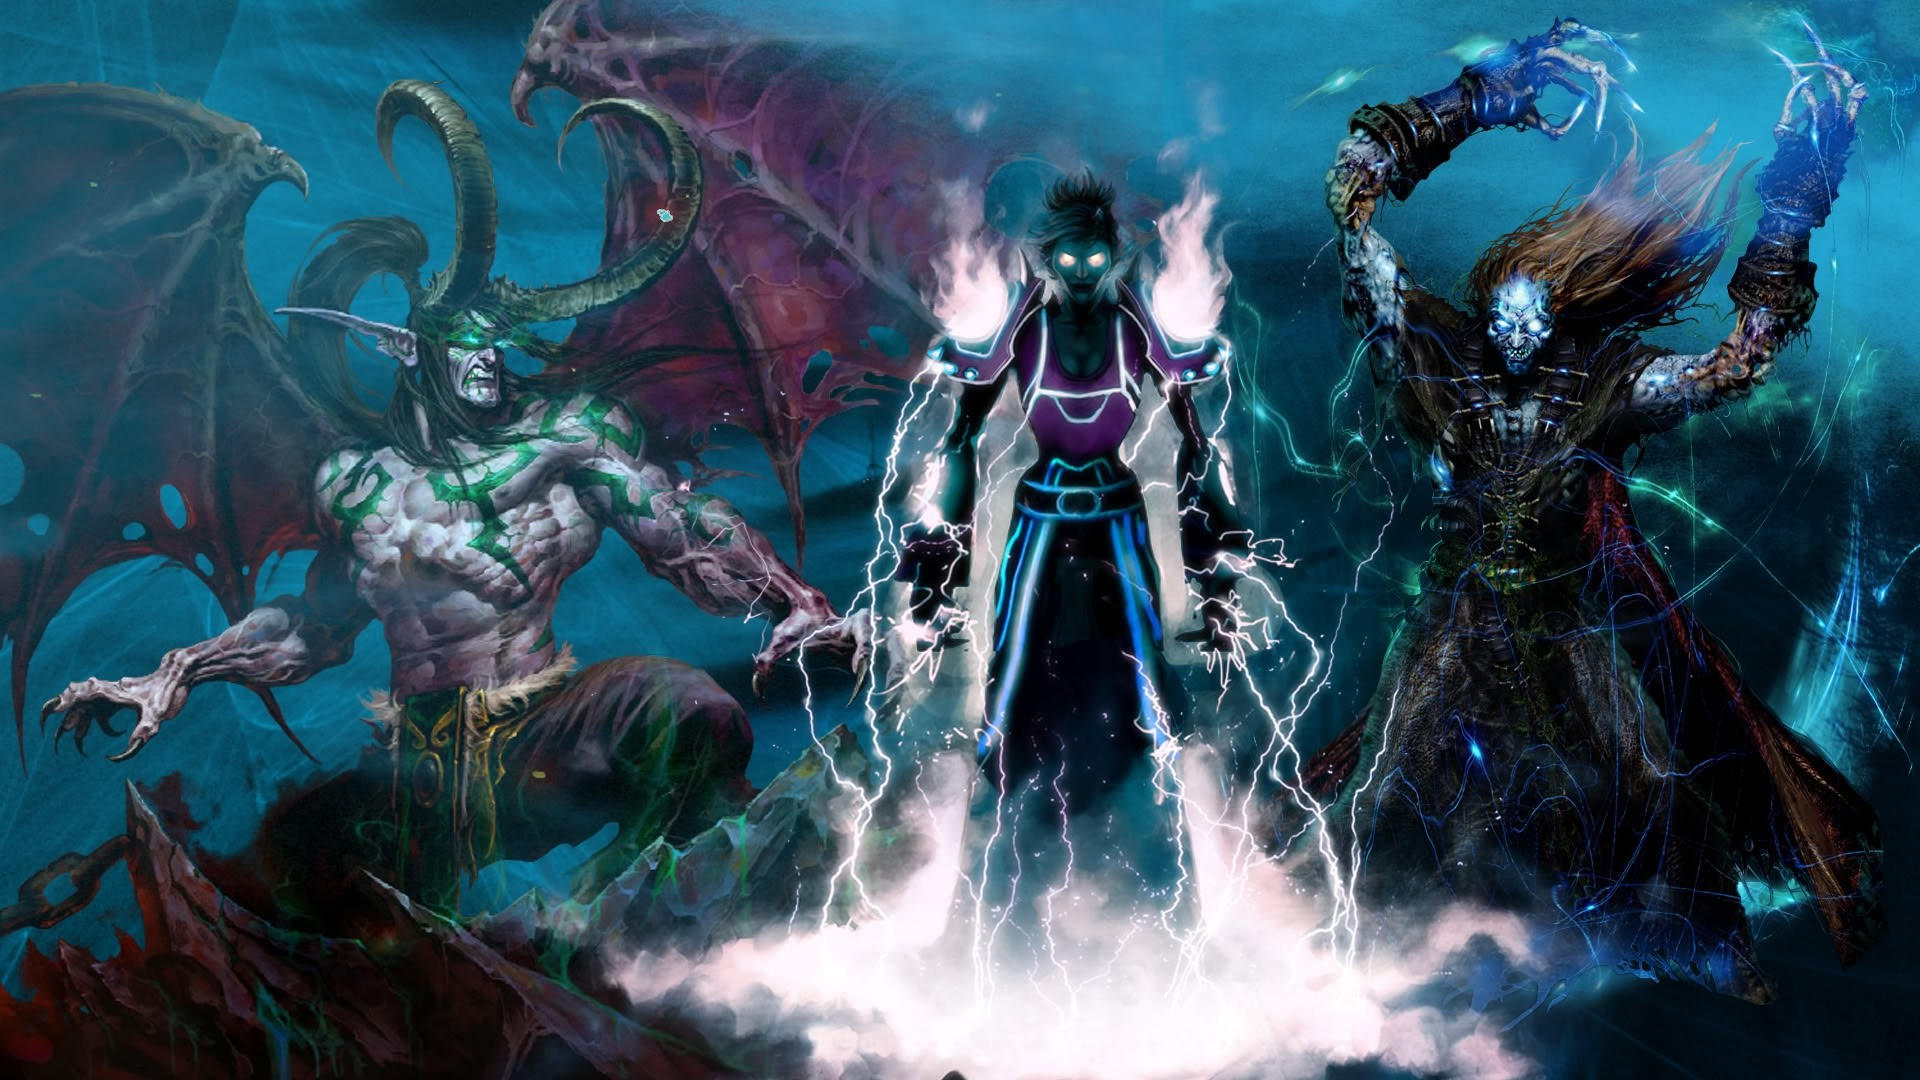 World Of Warcraft Wallpaper for pc